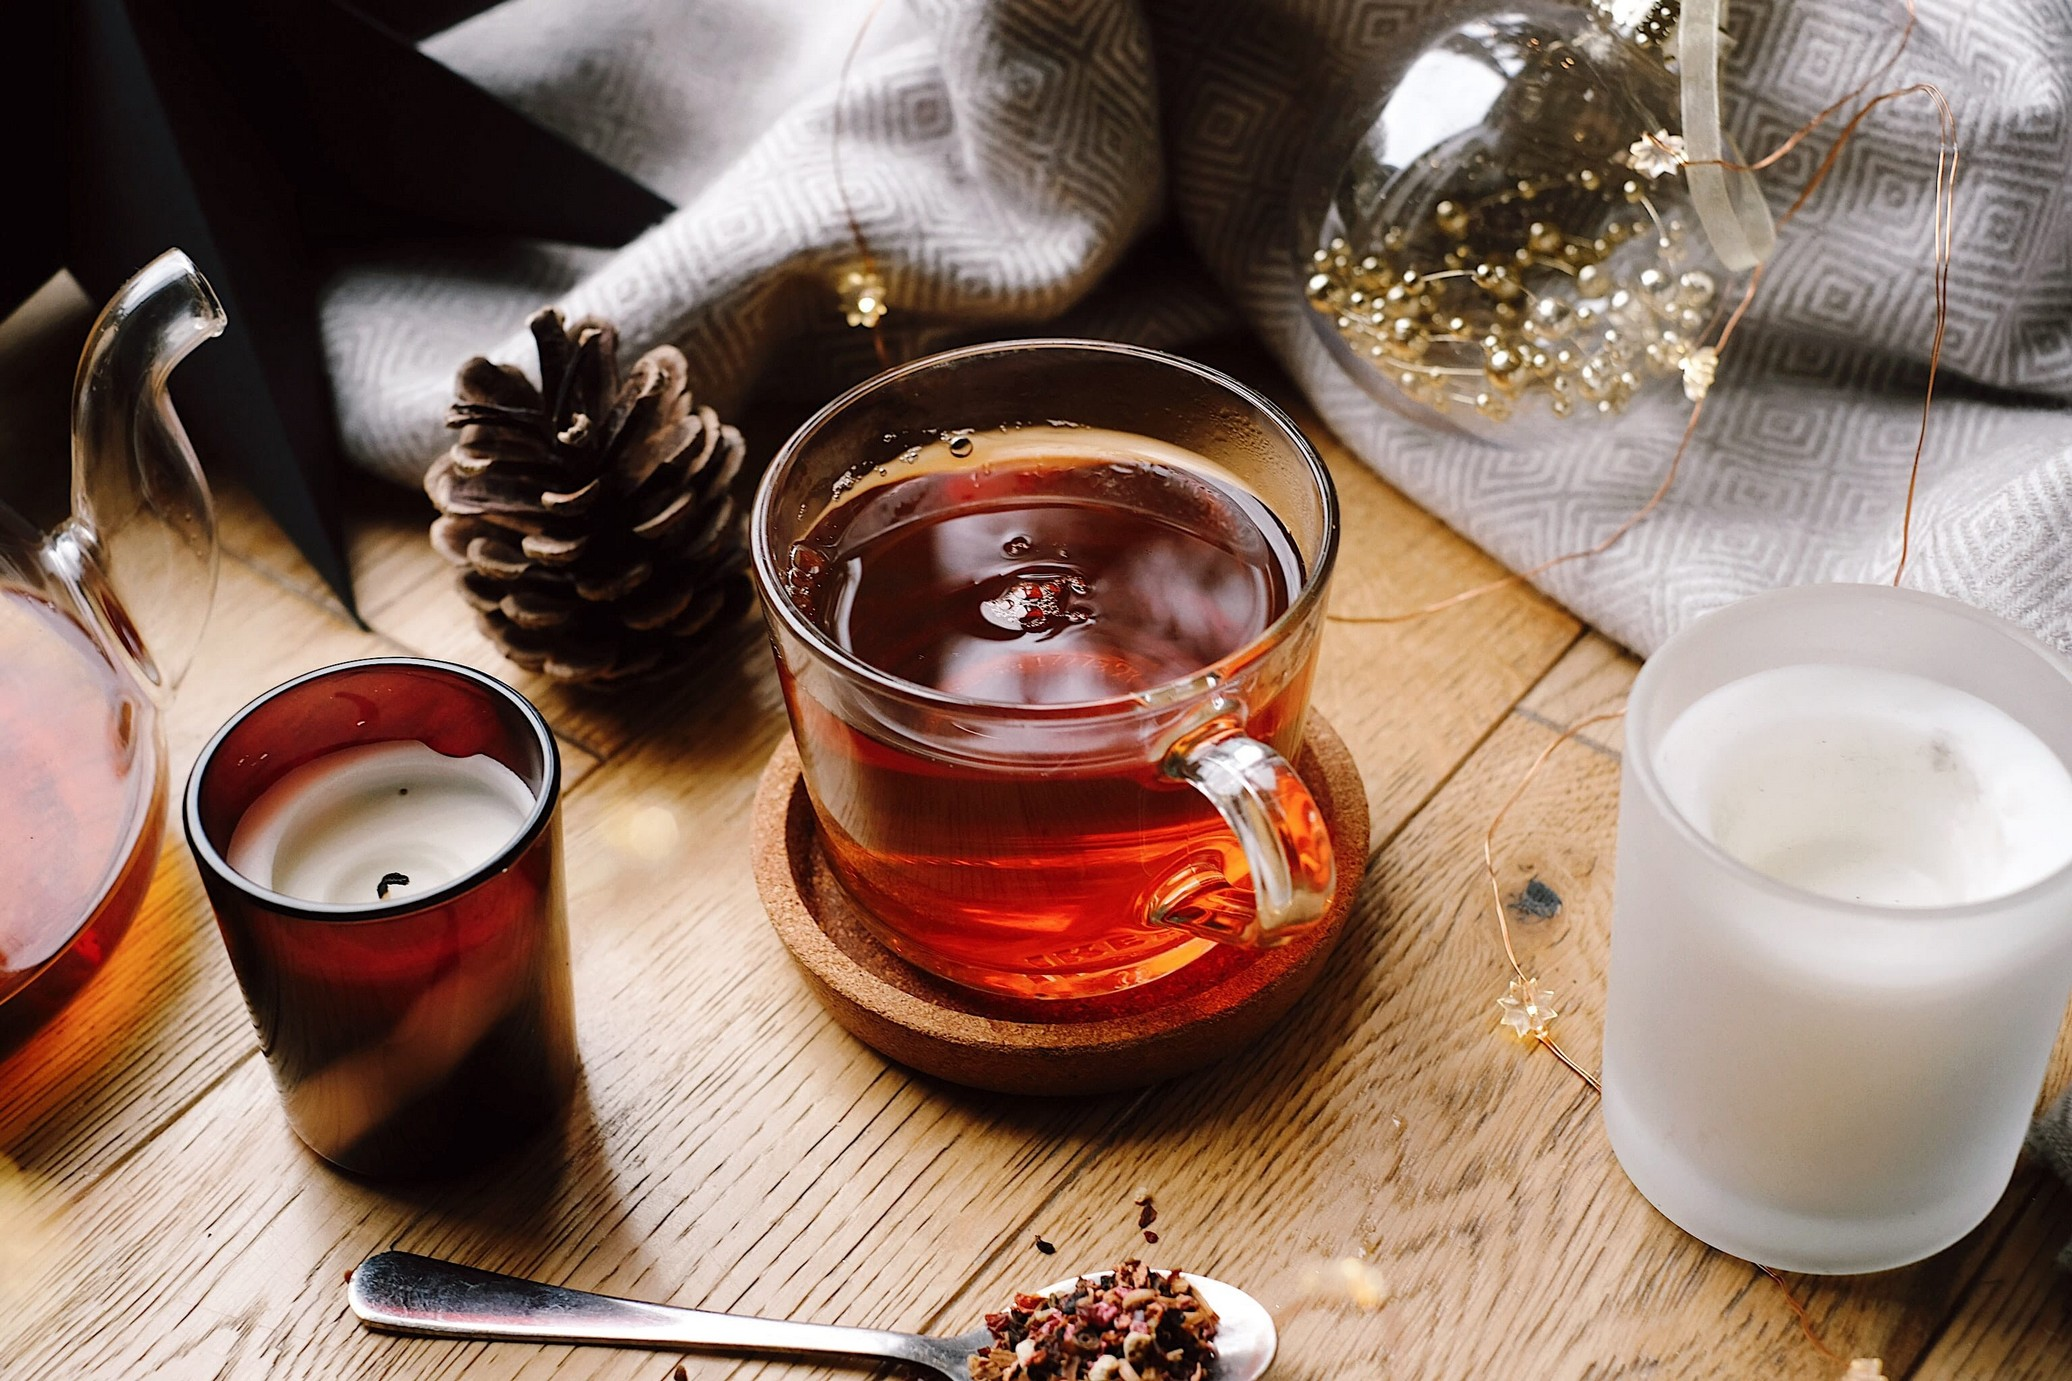 tea in glass mug with pine cones and candles scattered around.